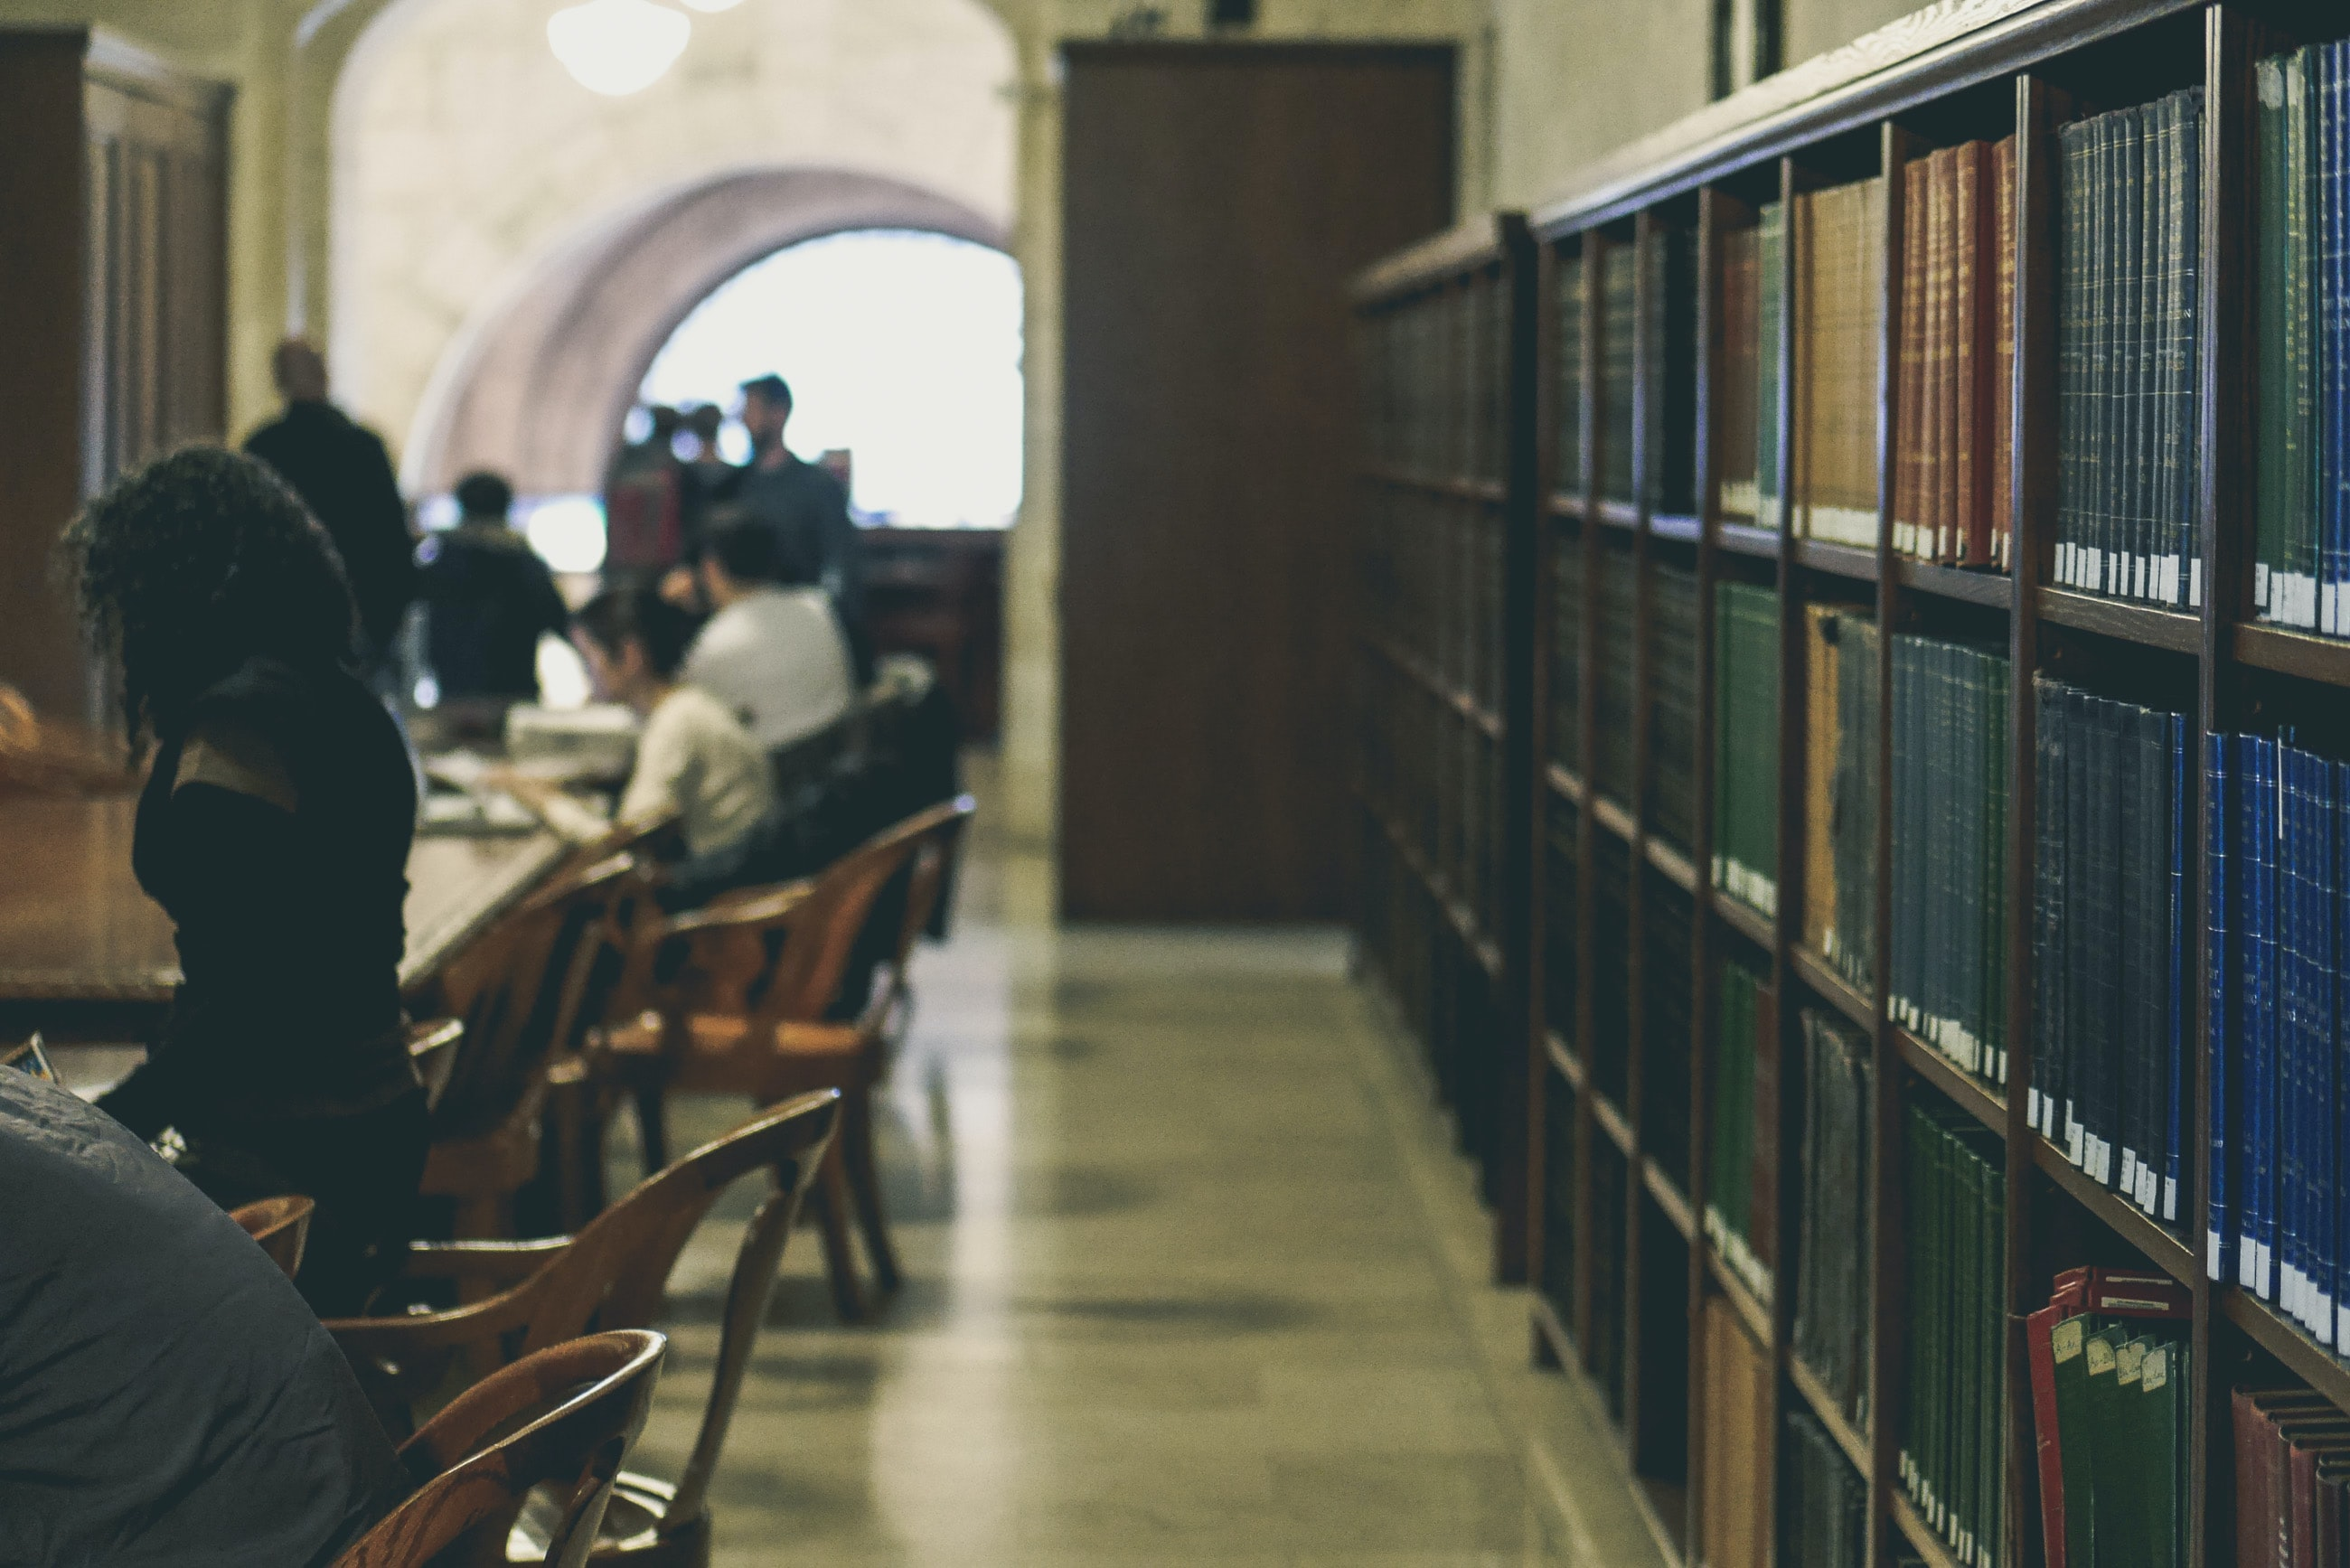 New York Public Library with library users and books on the bookshelves.